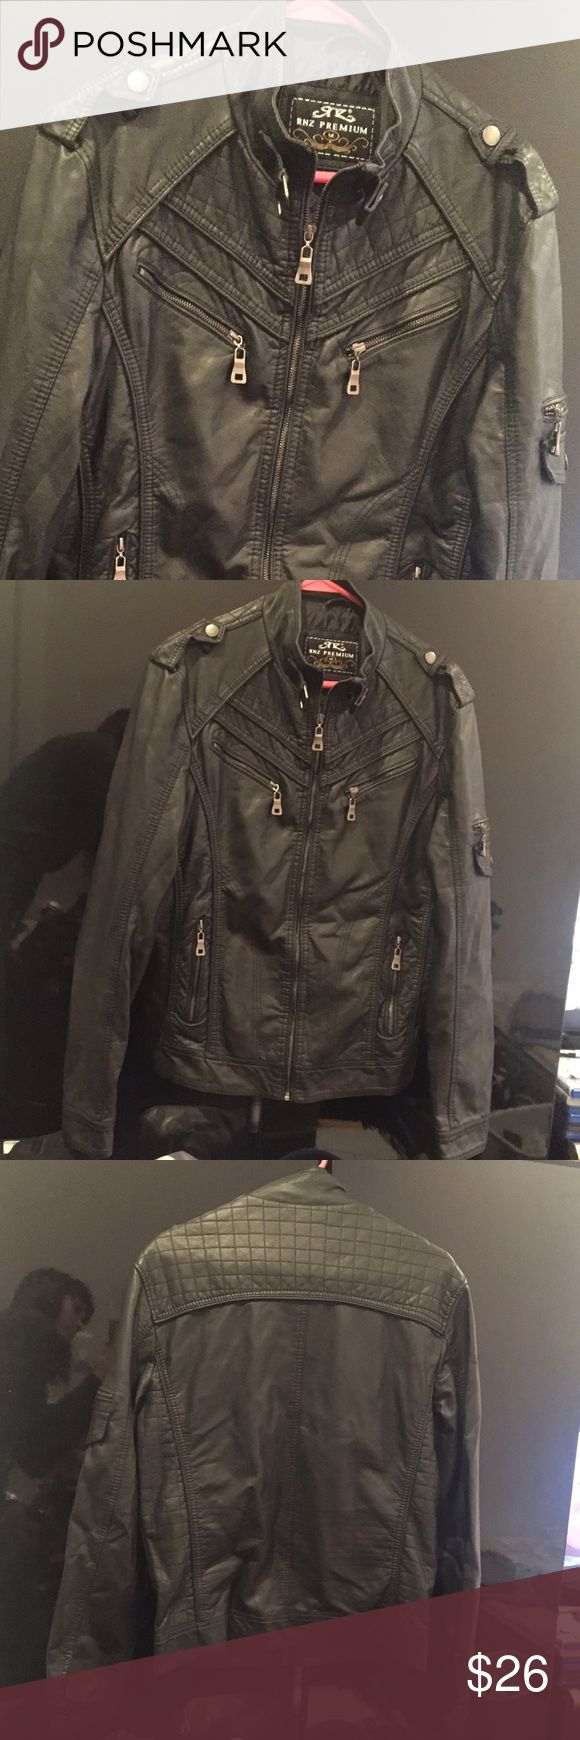 Men's leather jacket Men's black faux leather jacket in great condition! Comfy and badass. Size men's medium. Jackets & Coats